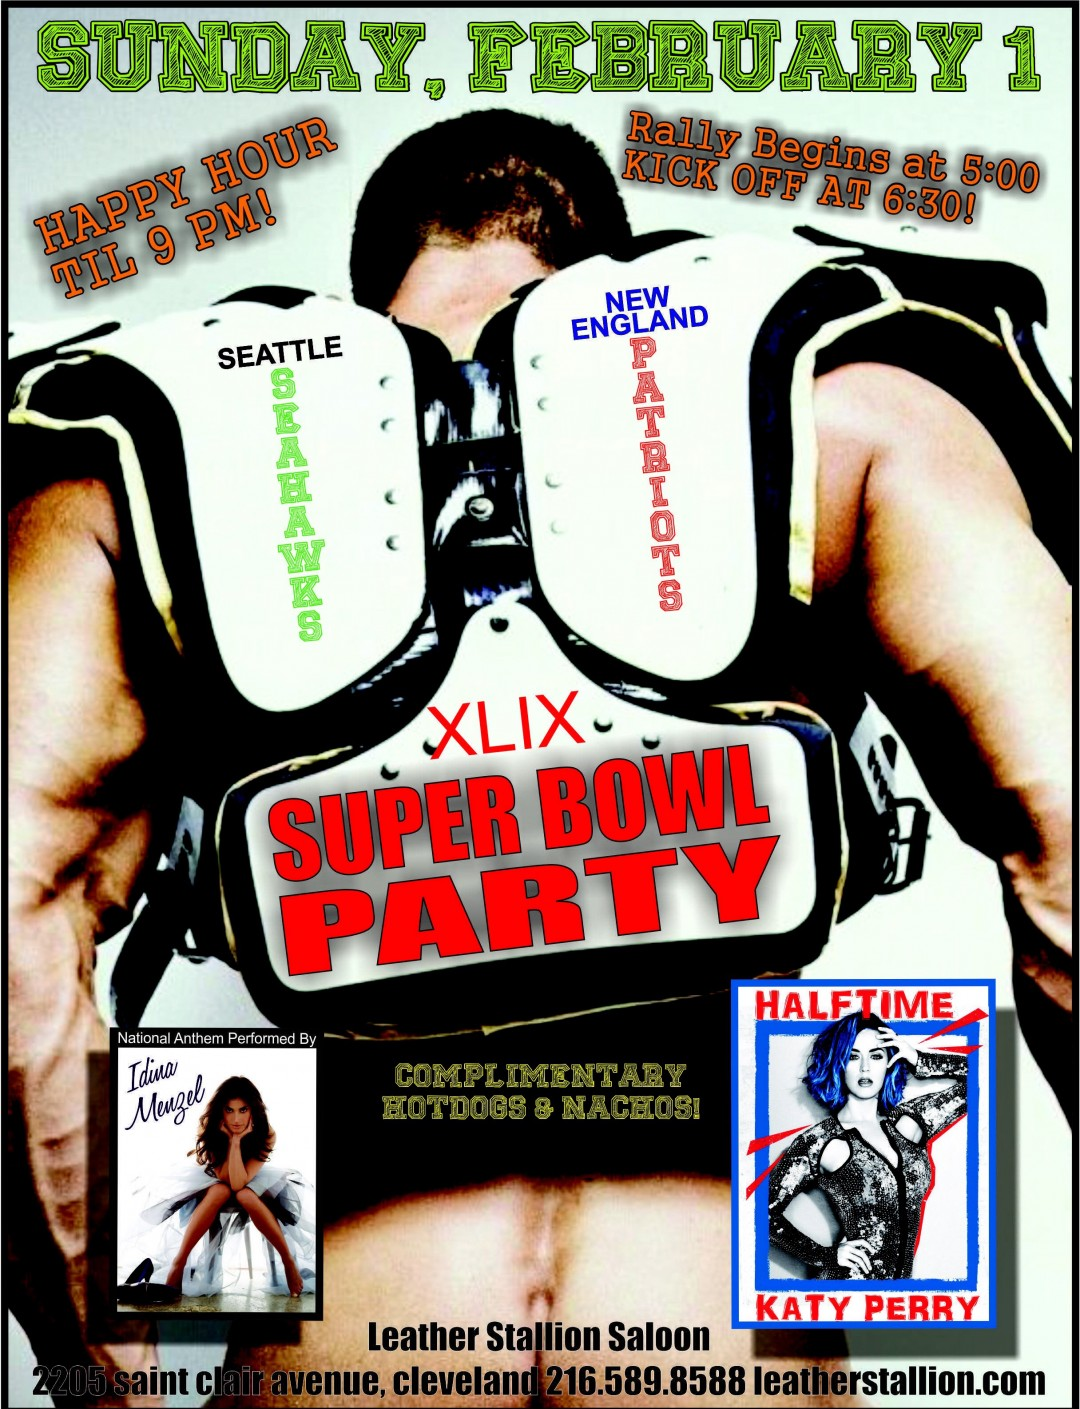 XLIX Super Bowl Party